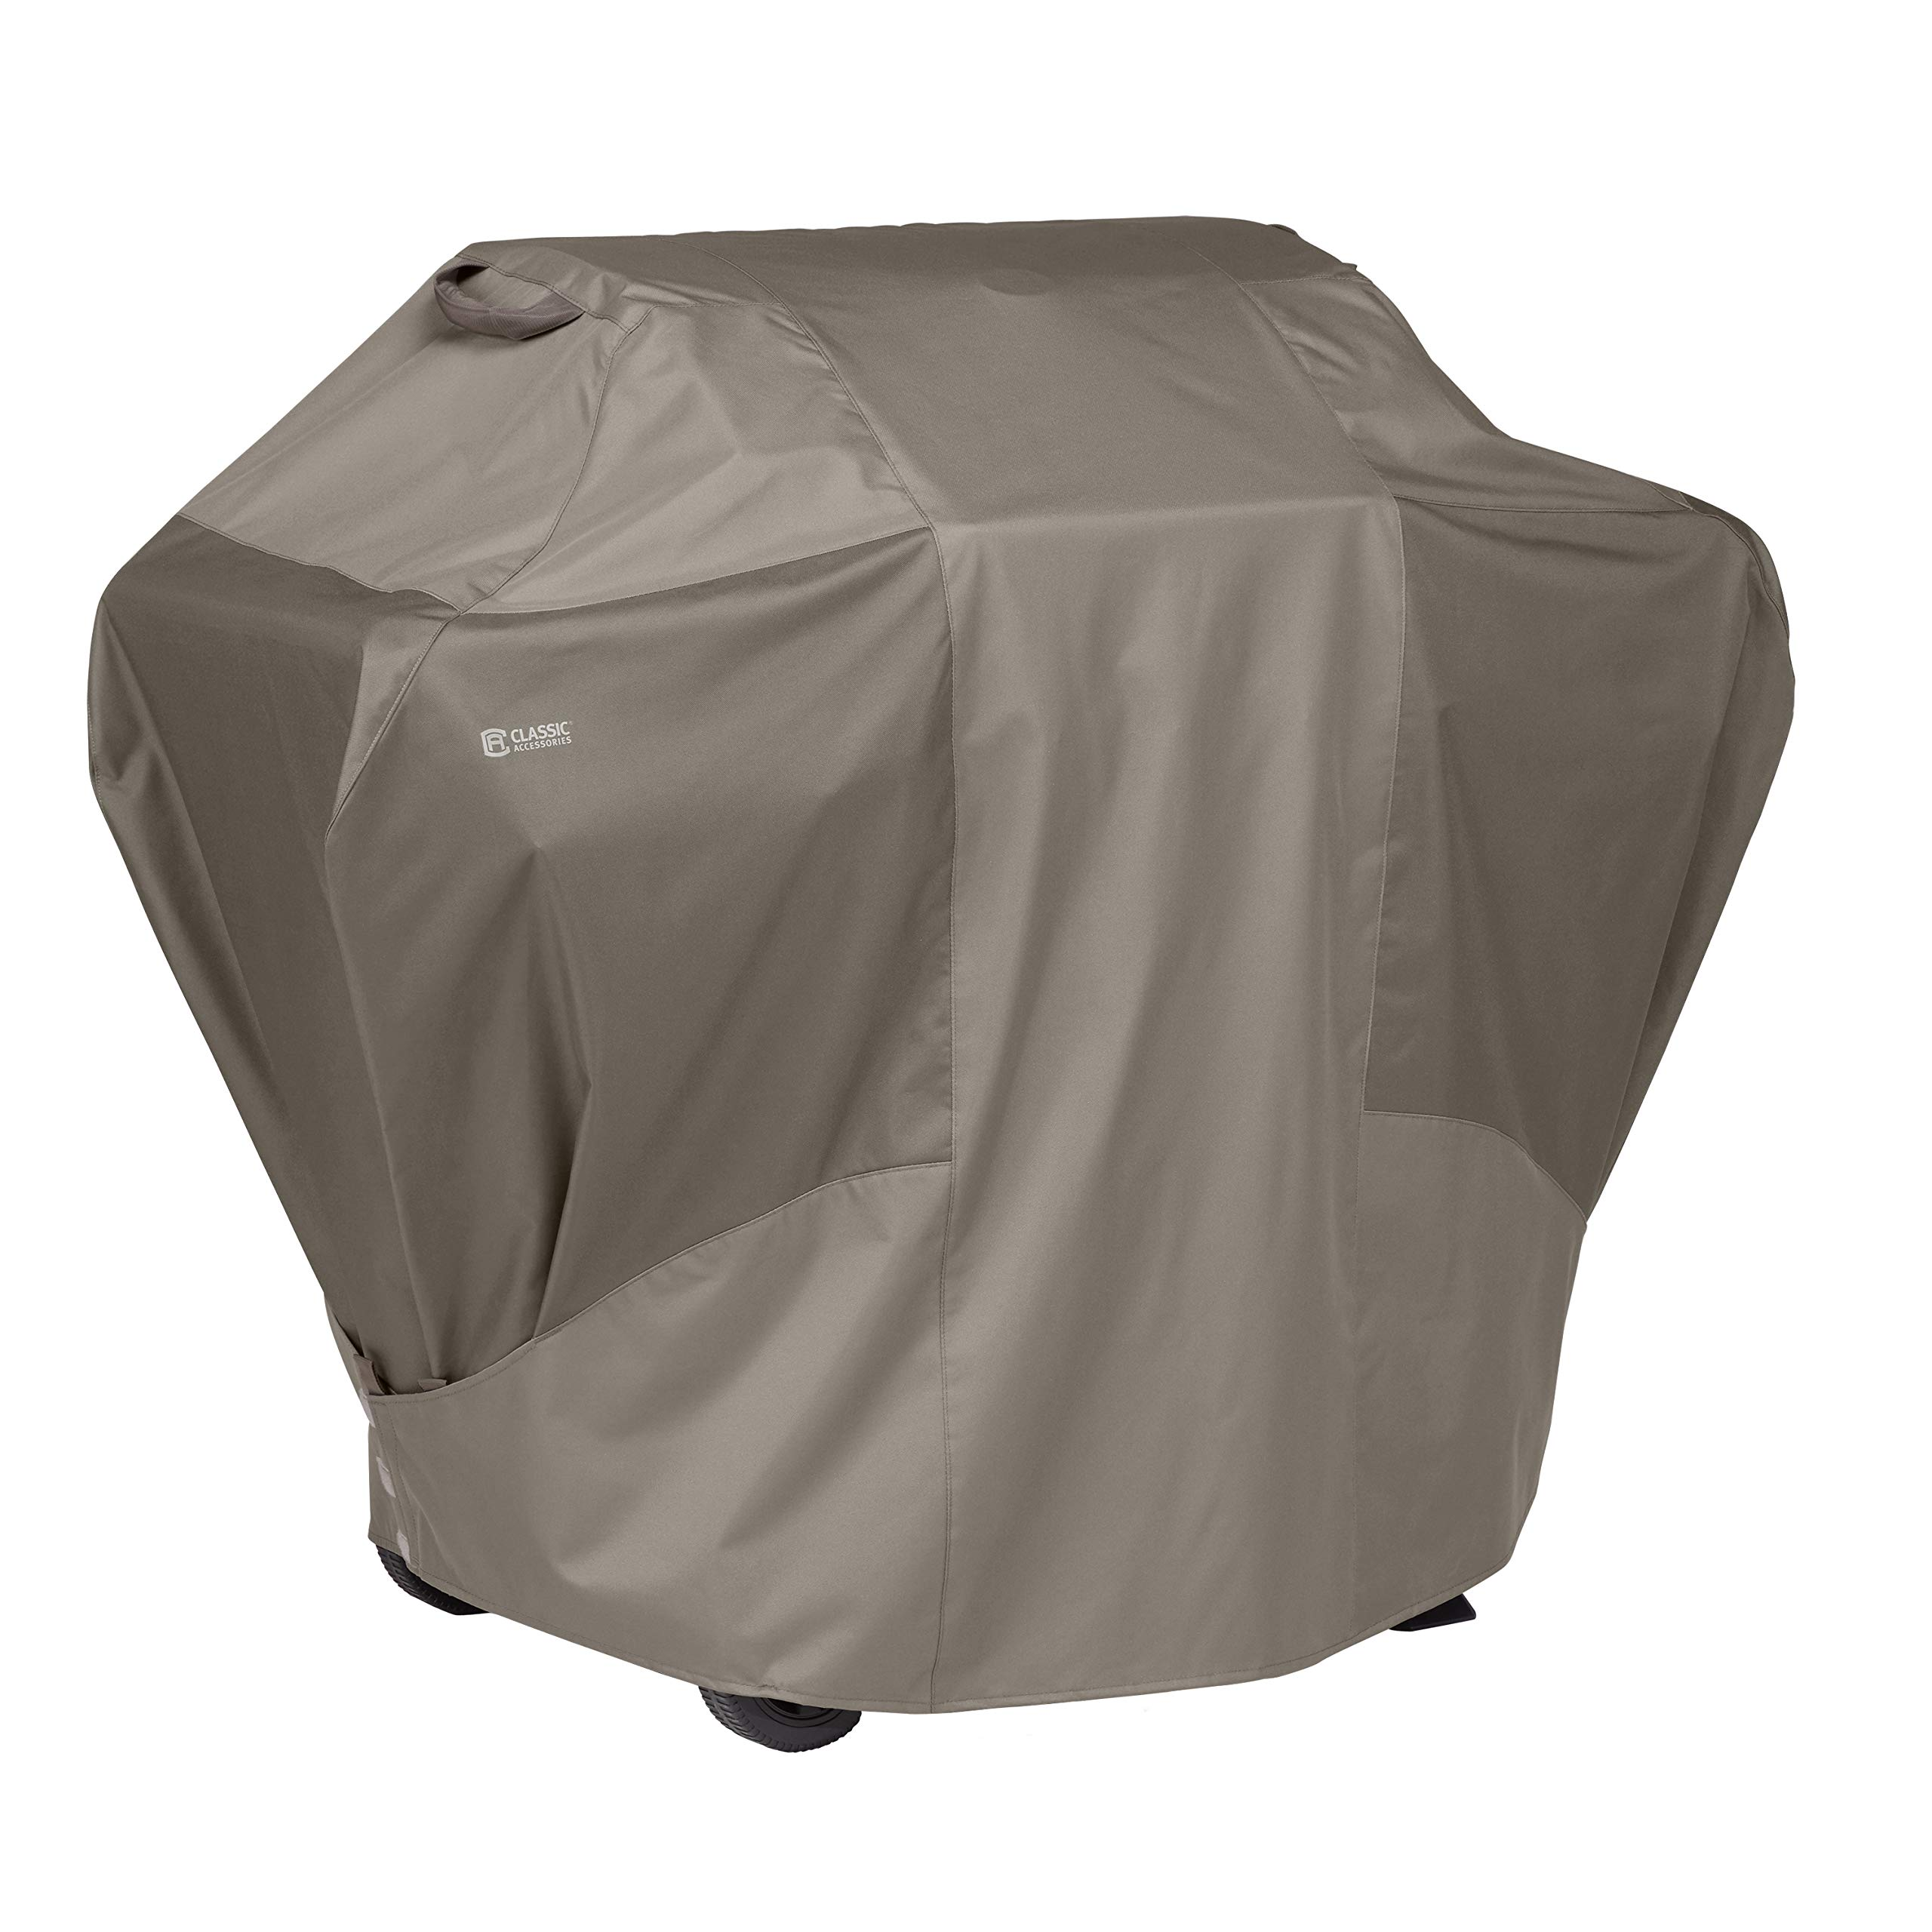 Classic Accessories Porterhouse Water-Resistant 70 Inch BBQ Grill Cover